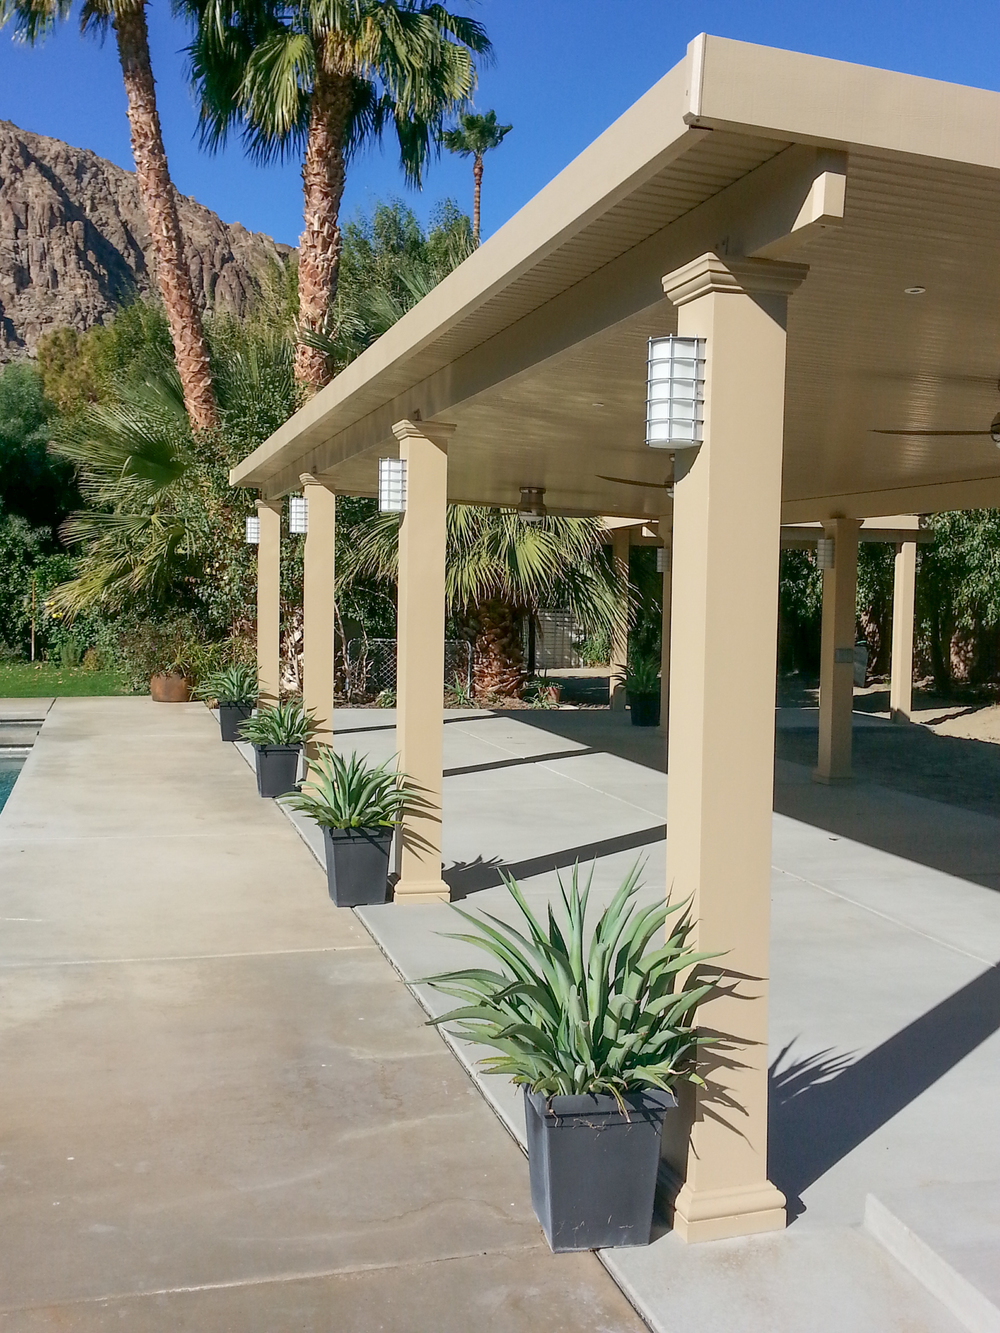 Custom Light Fixtures On Solid Patio Cover, Indio, CA